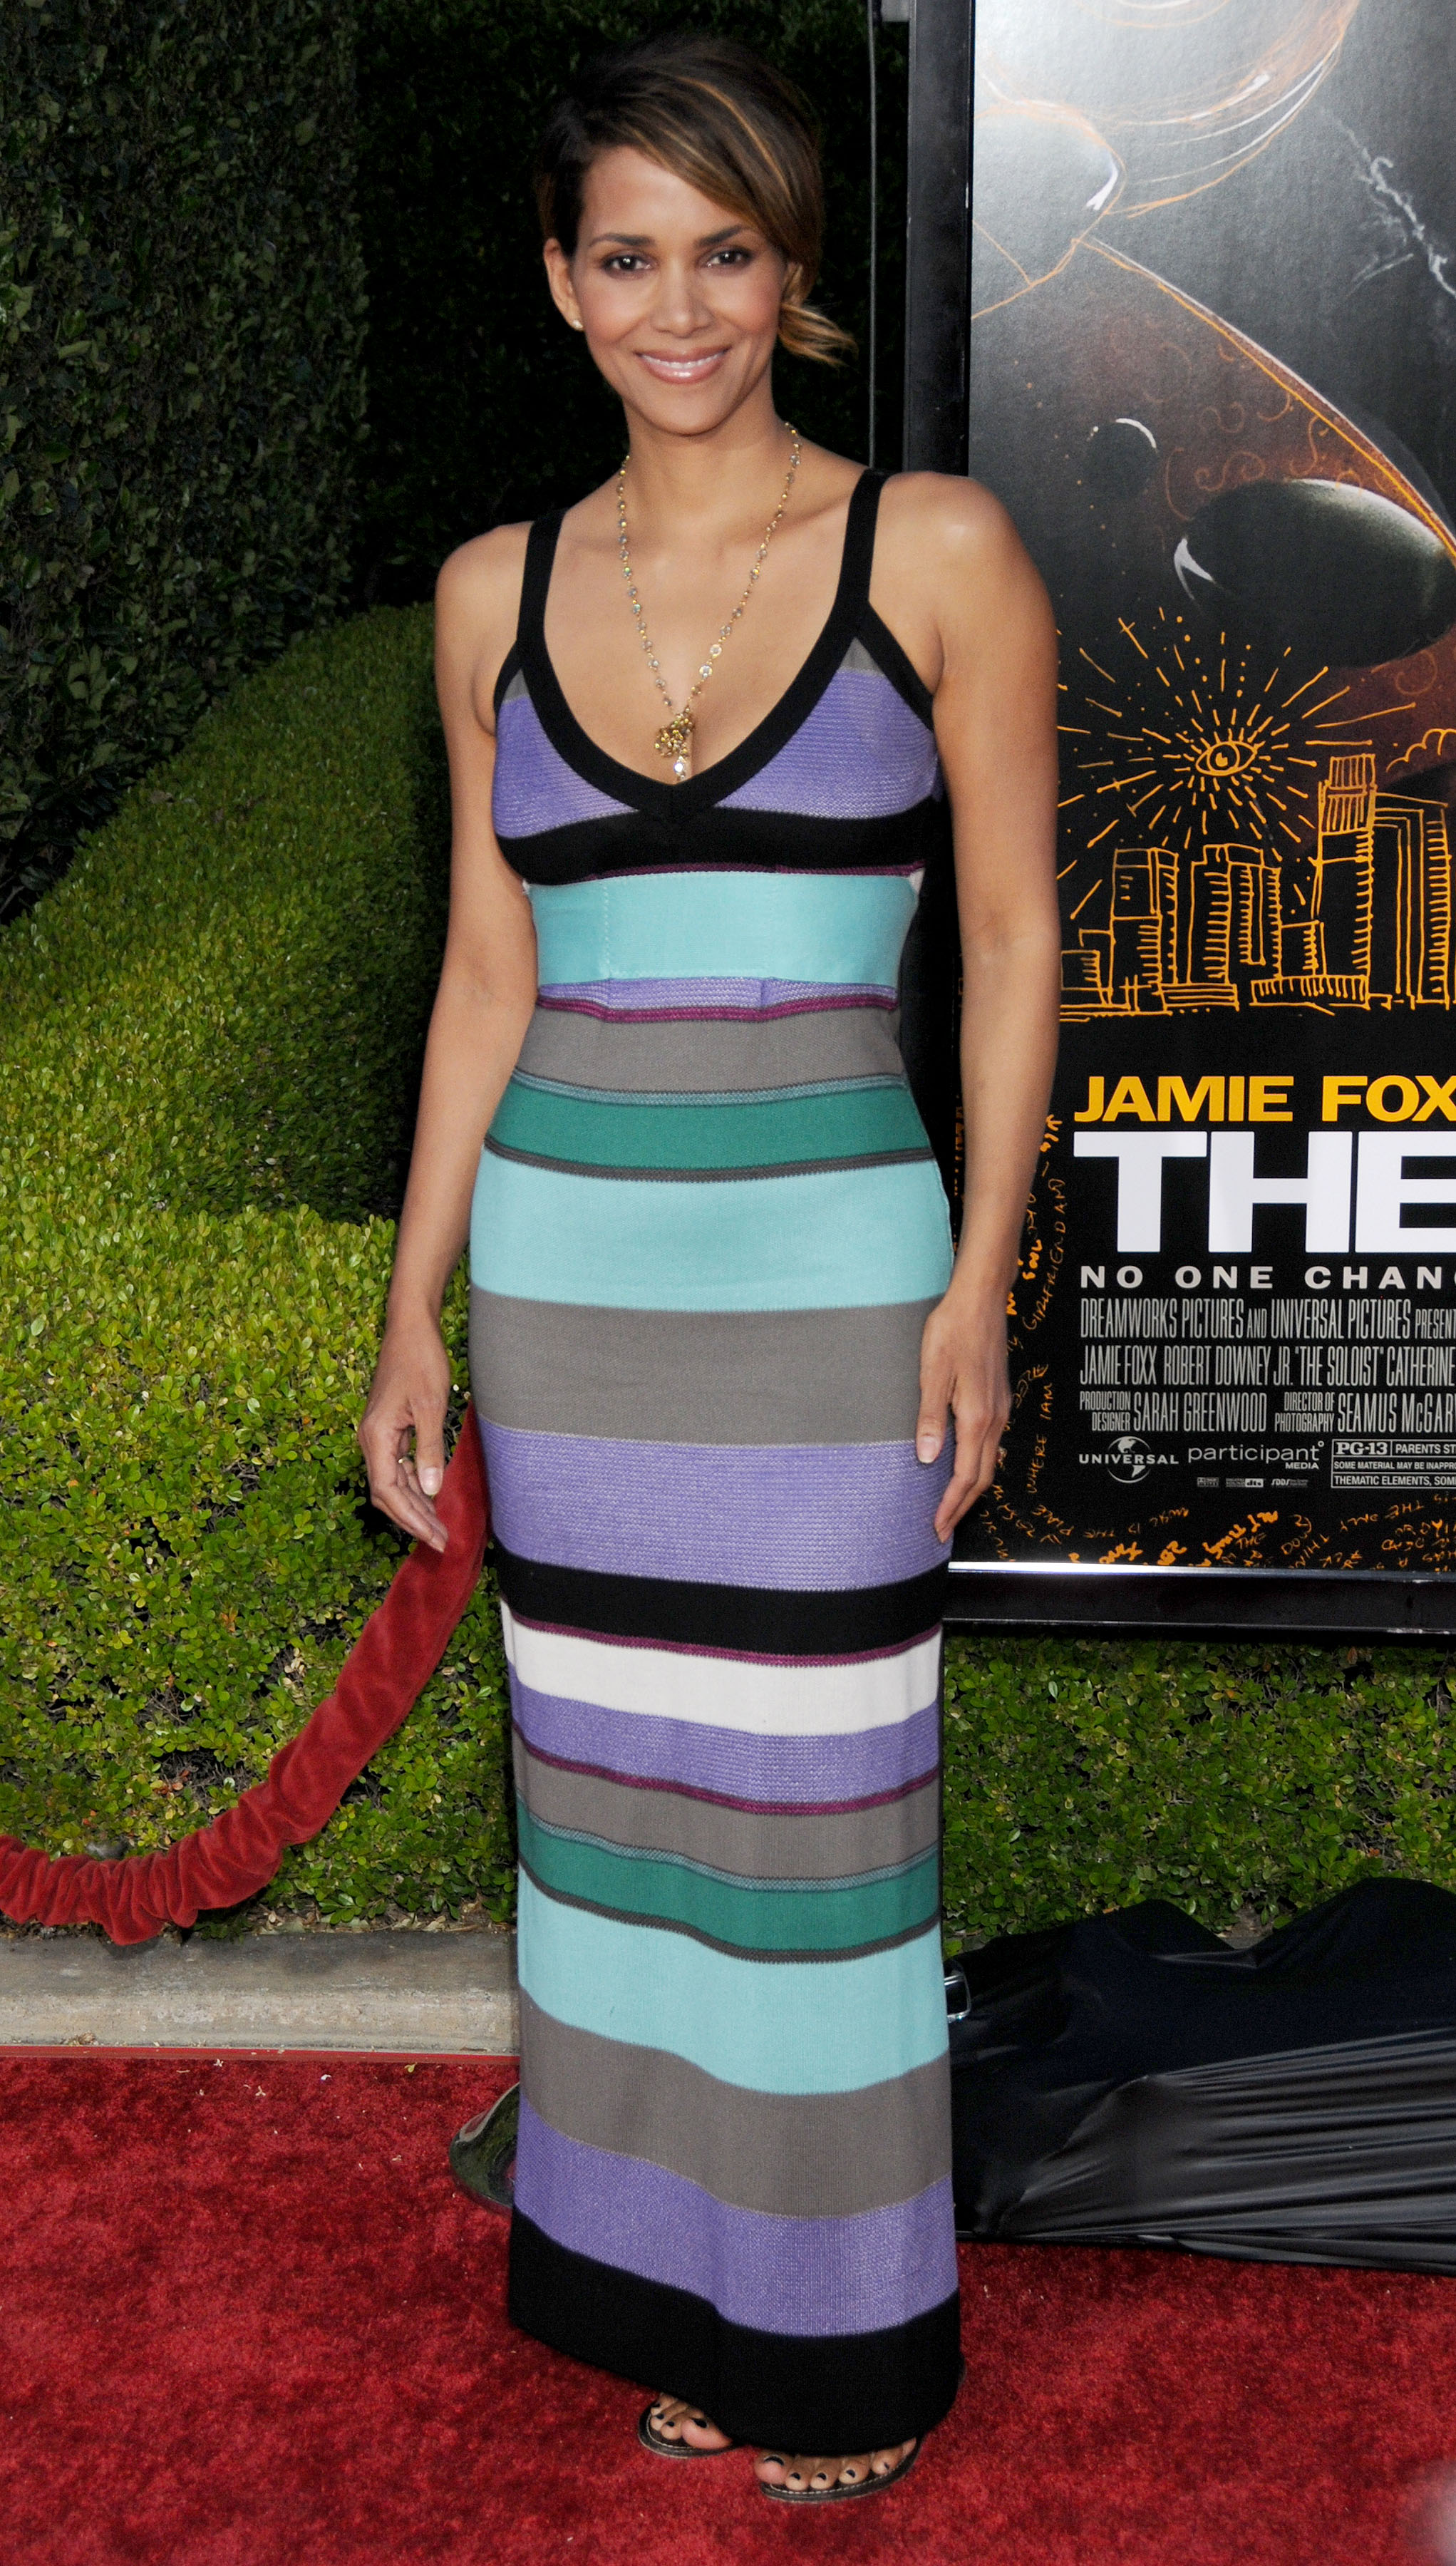 64632_Halle_Berry_The_Soloist_premiere_in_Los_Angeles_37_122_183lo.jpg